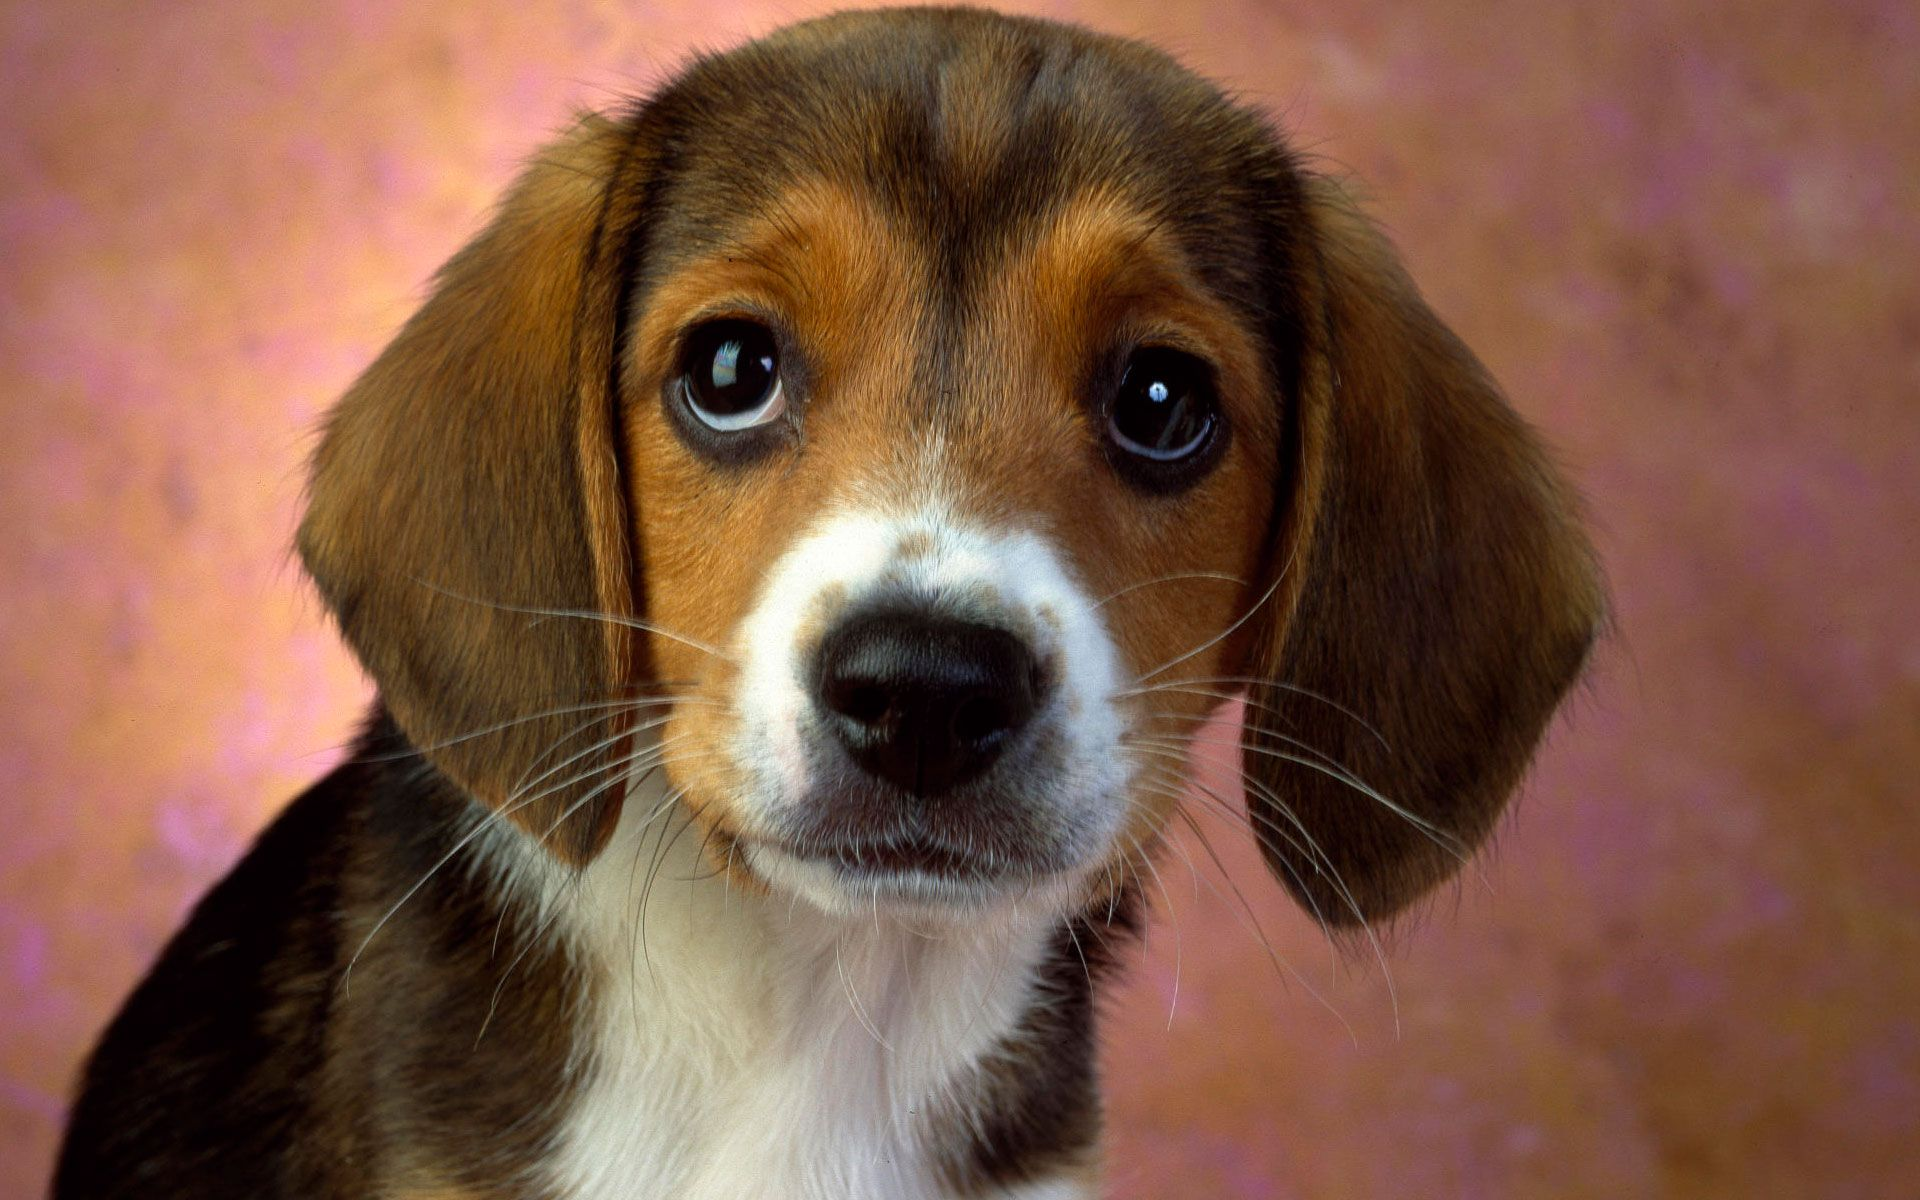 Puppy Images Visicom Yahoo Search Results Cute Beagles Beagle Puppy Beagle Dog